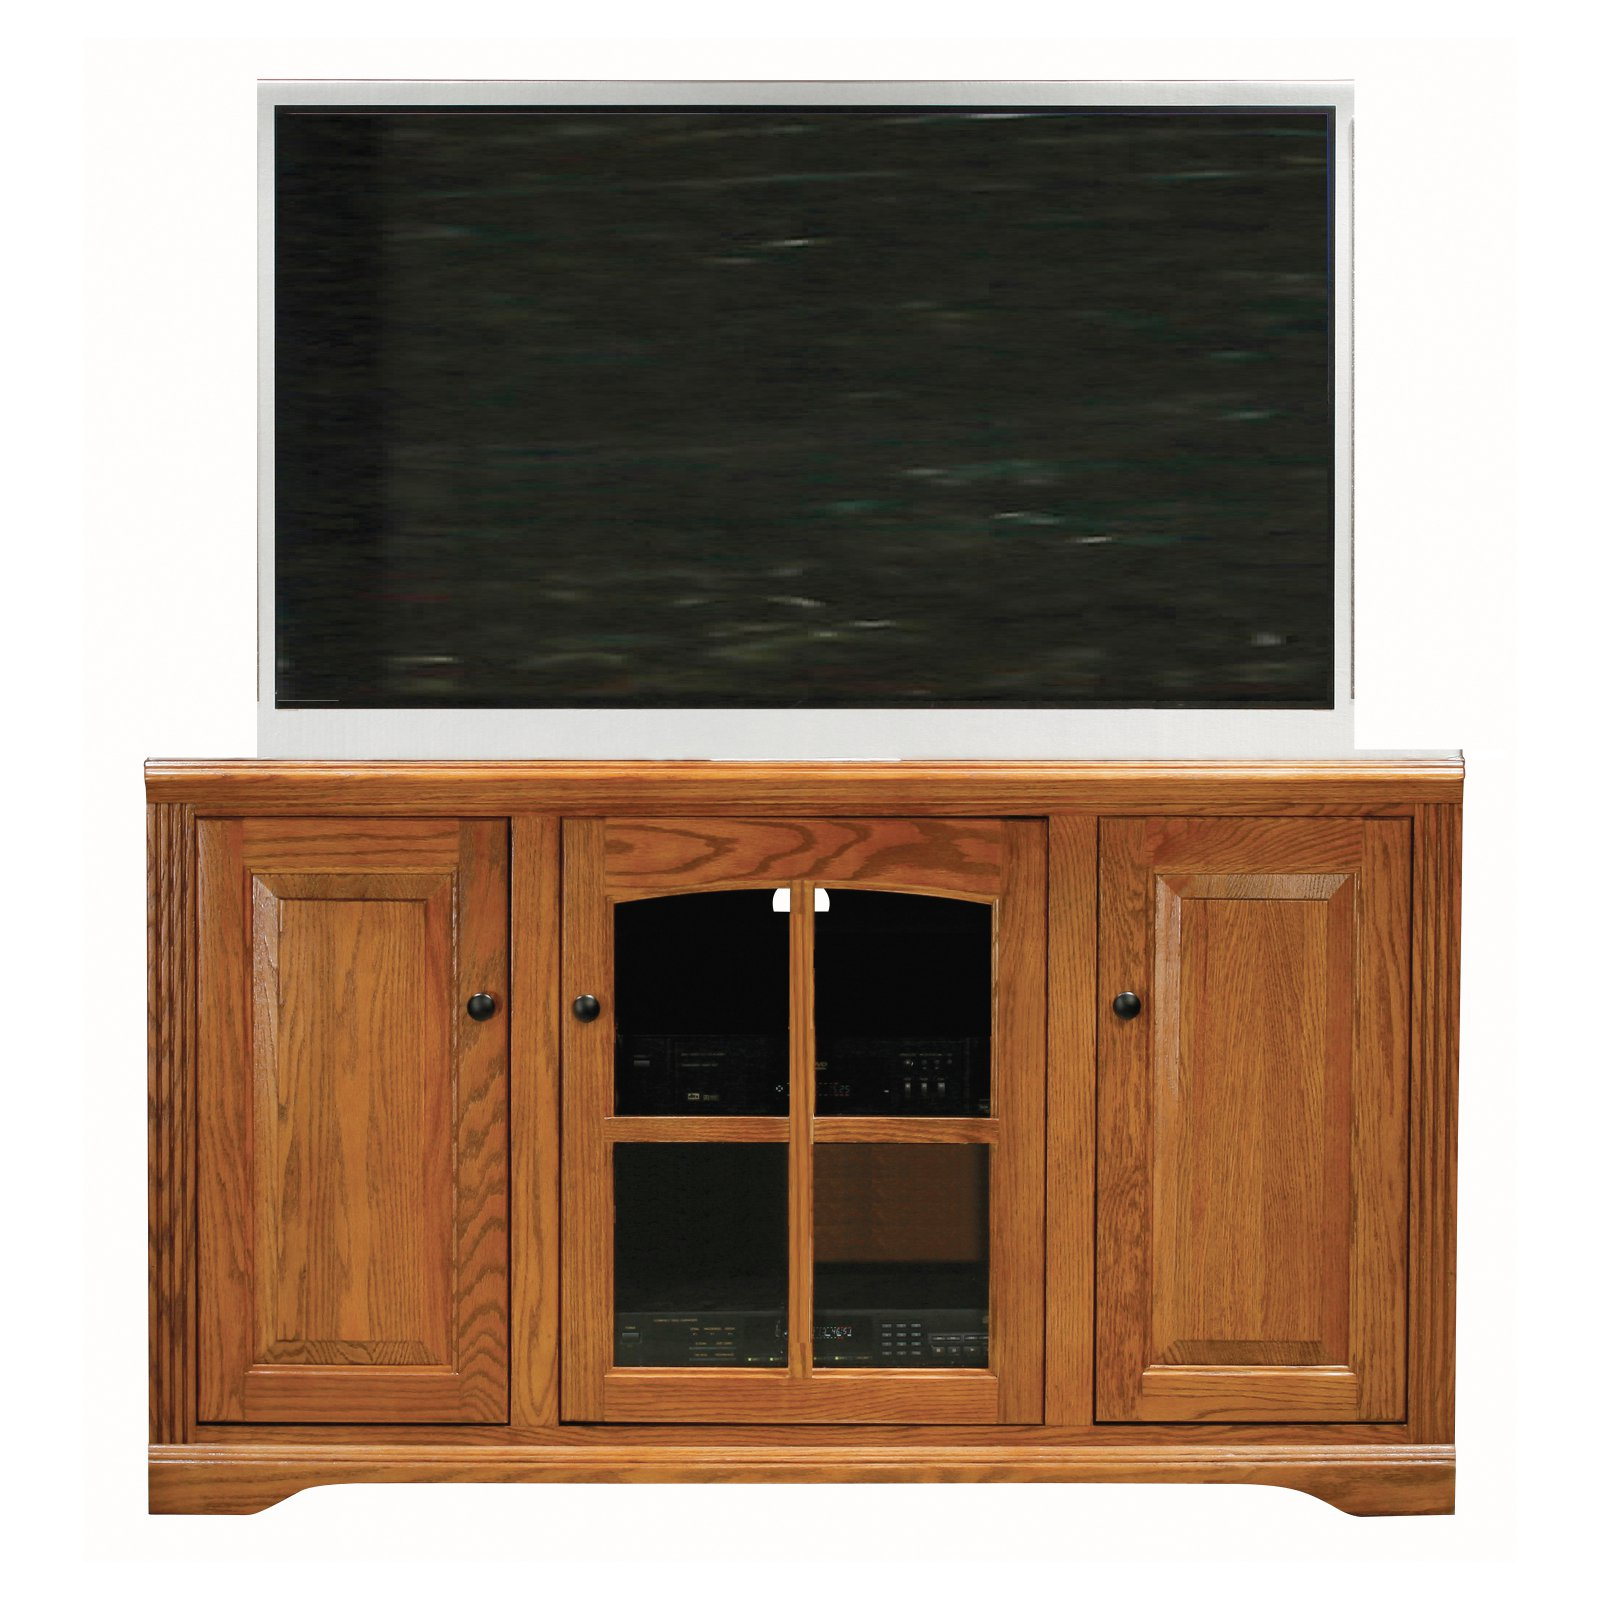 Eagle Furniture Oak Ridge Customizable 55 in. Tall Entertainment Console